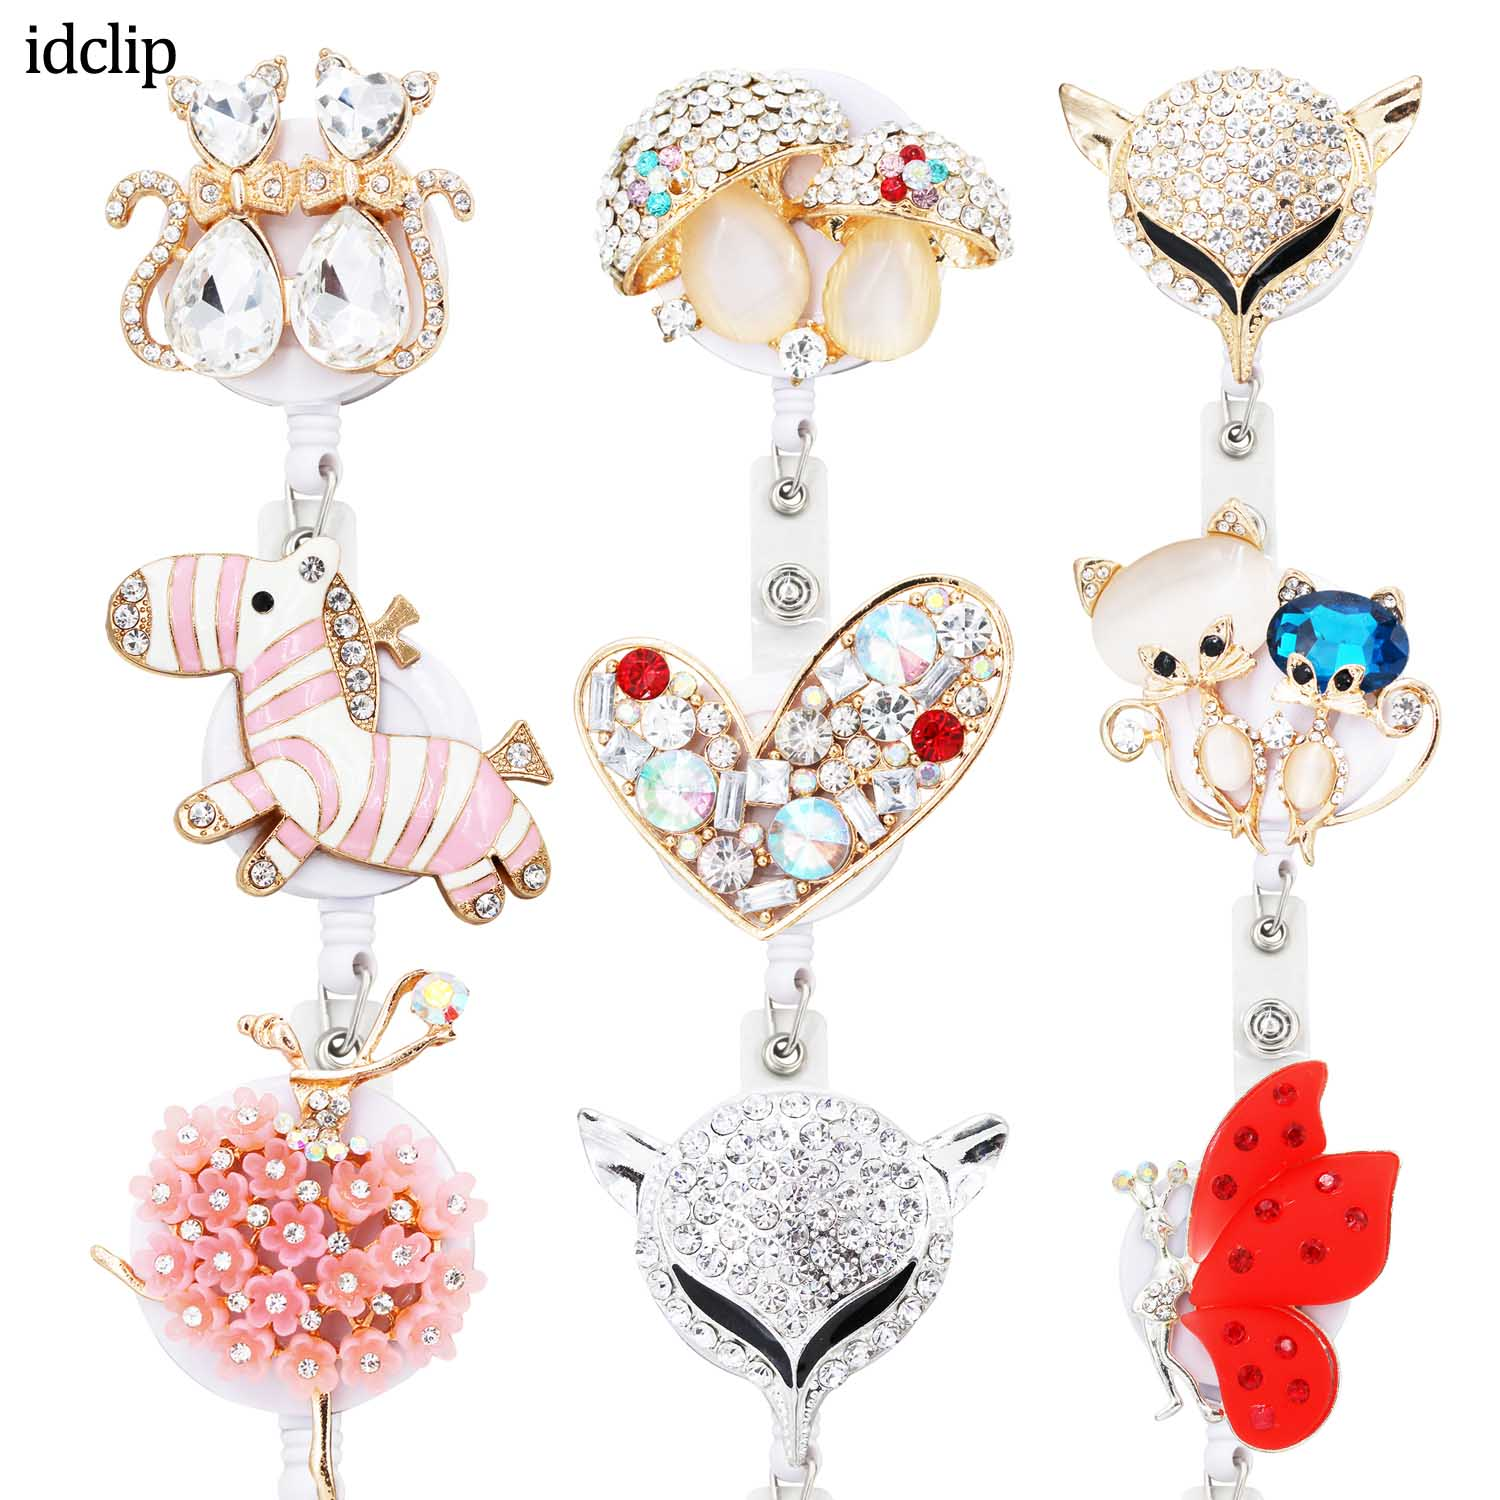 Idclip 1PC Animal Retractable Badge Holder With Alligator Clip Retractable Cord ID Badge Reel Fox Dress Girl Horse Style